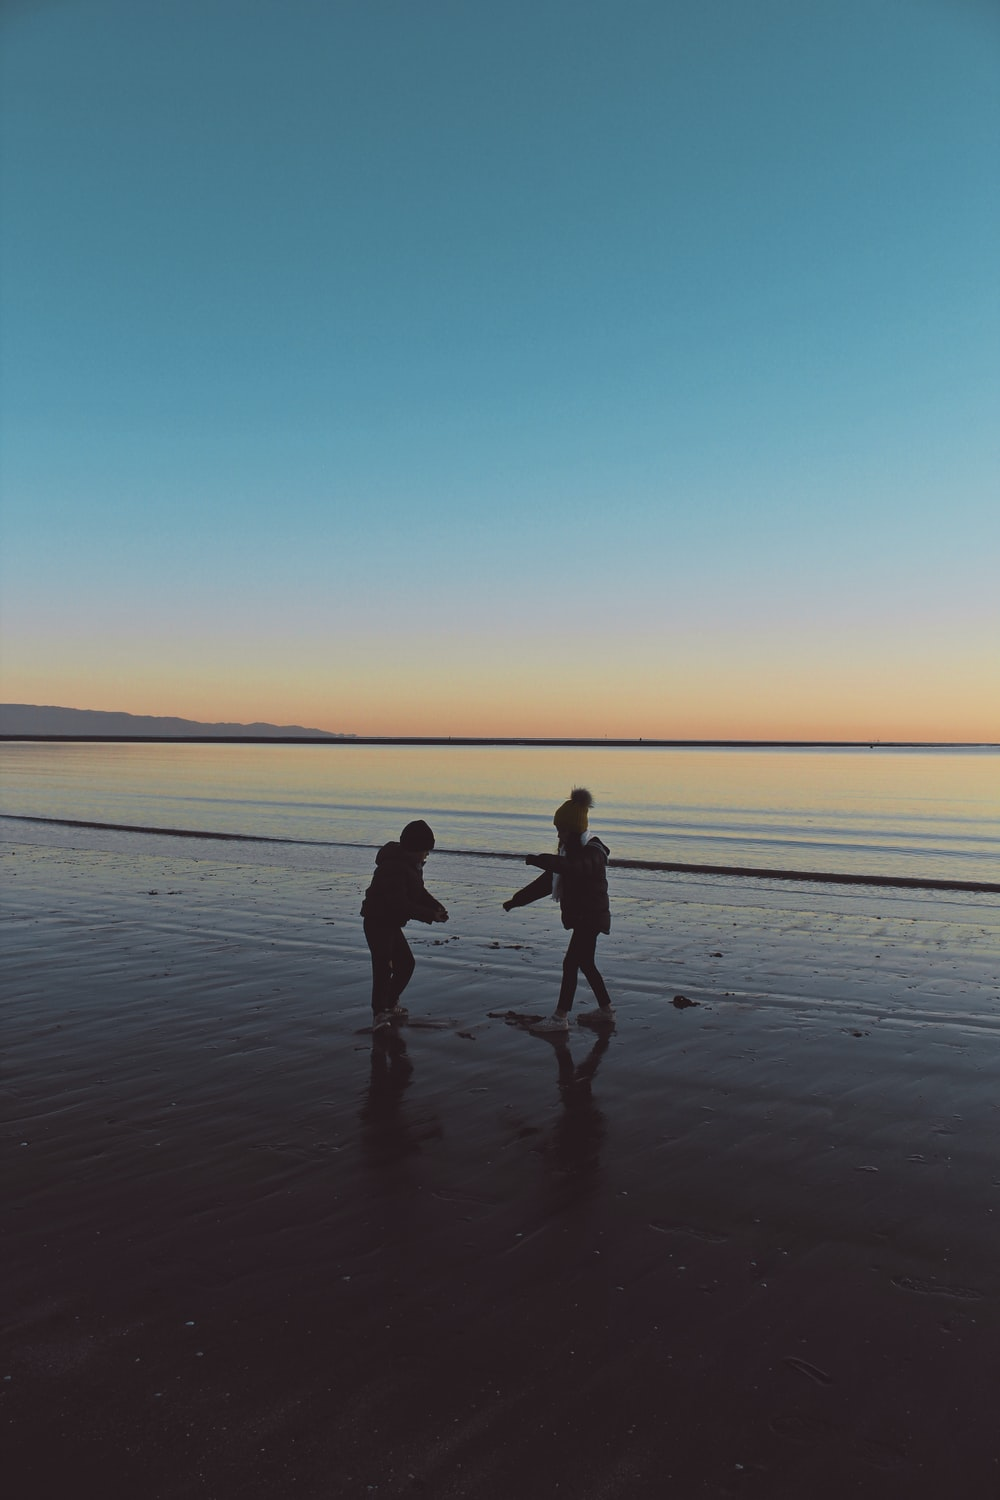 man and woman walking on beach during sunset